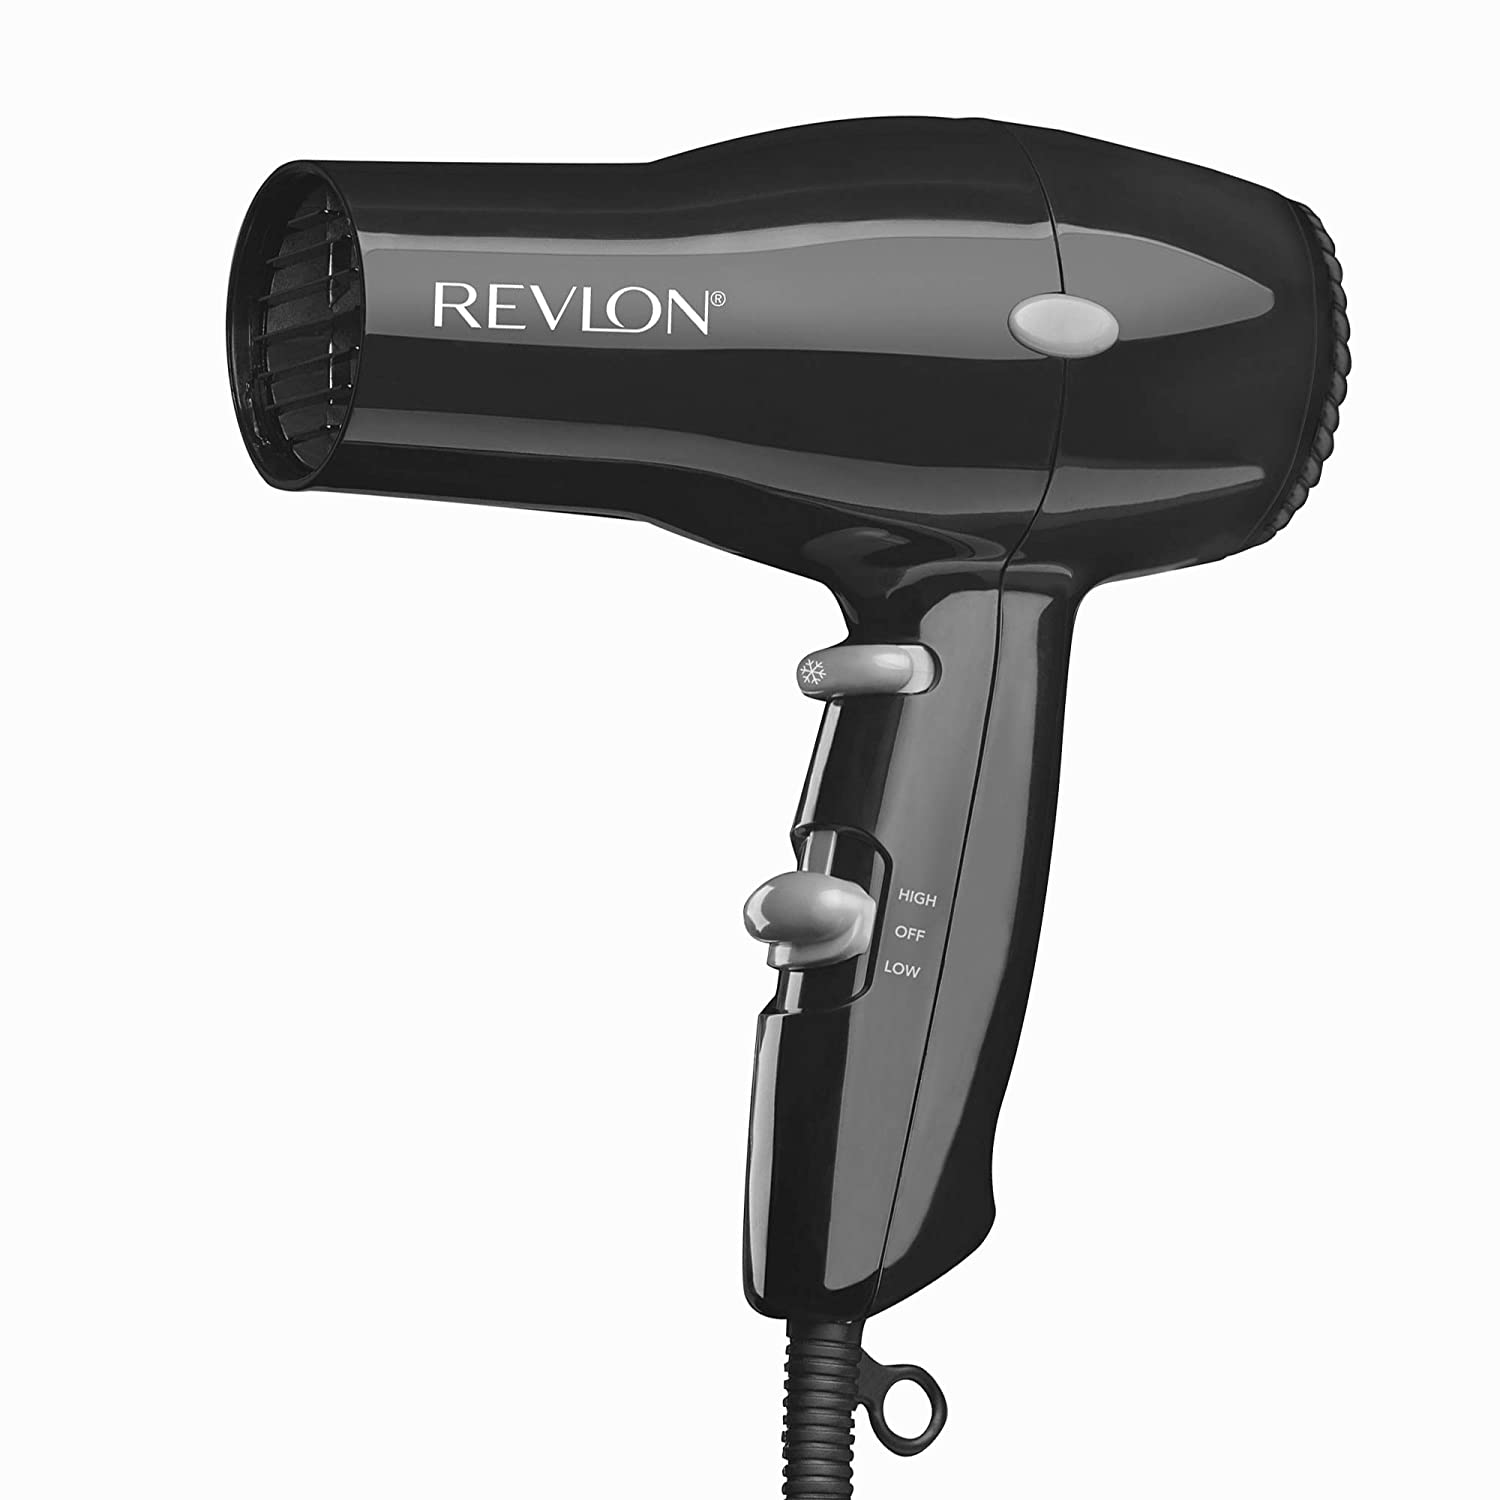 Revlon 1875W Travel Hair Dryer